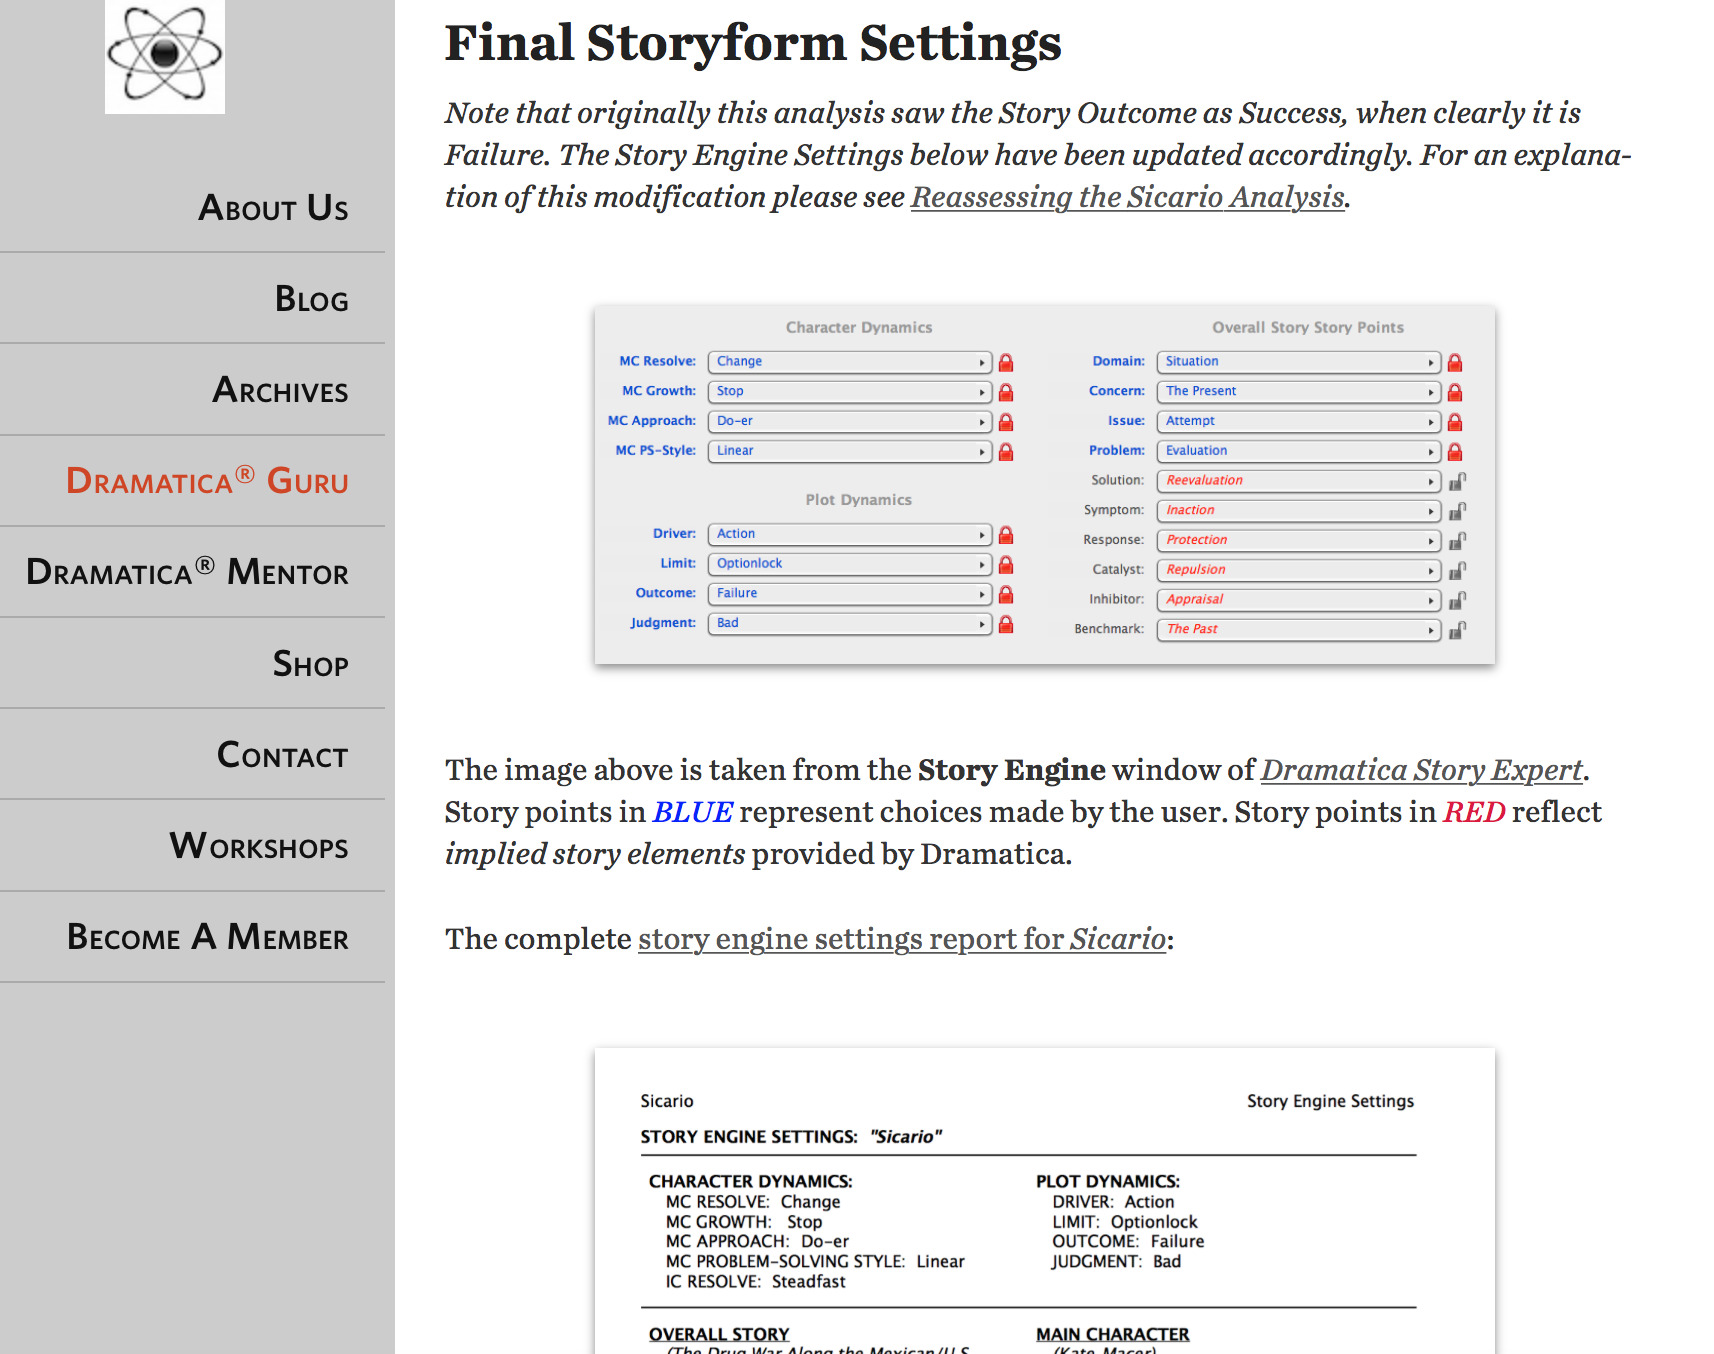 Example of Final Storyform Settings